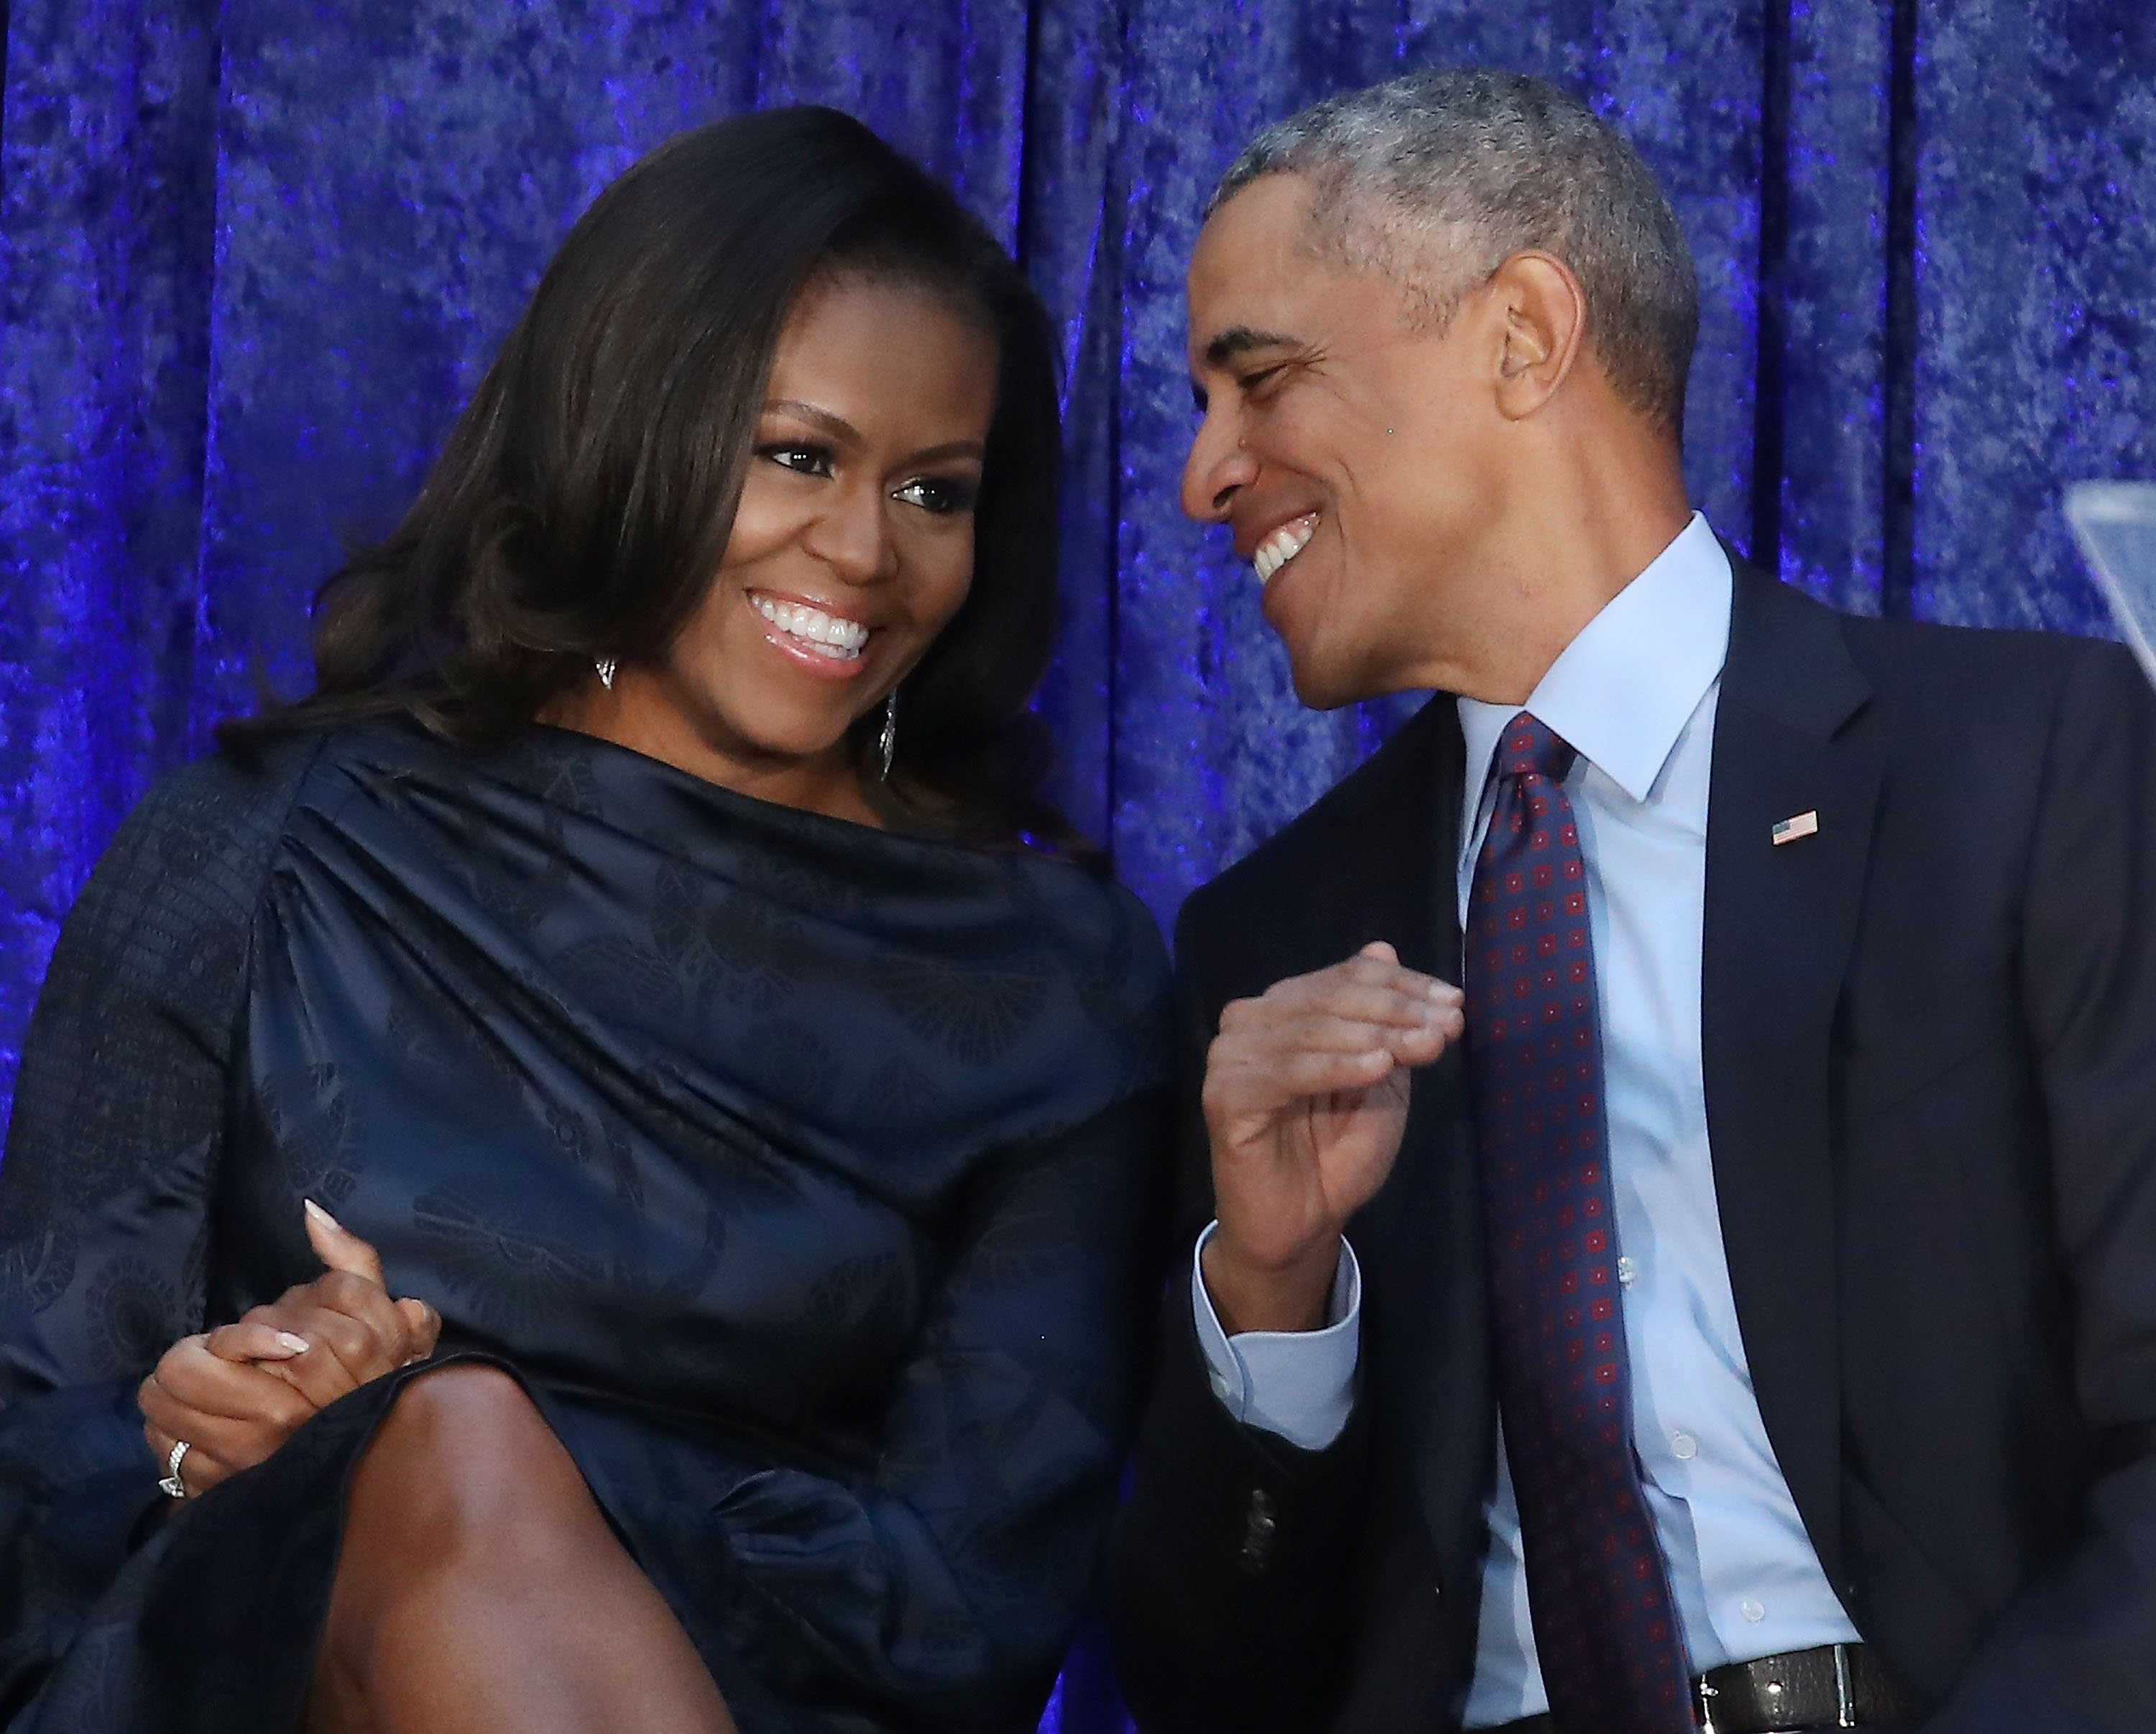 Barack Obama & Michelle Obama at the Smithsonian's National Portrait Gallery on Feb. 12, 2018 in Washington, DC. | Photo: Getty Images